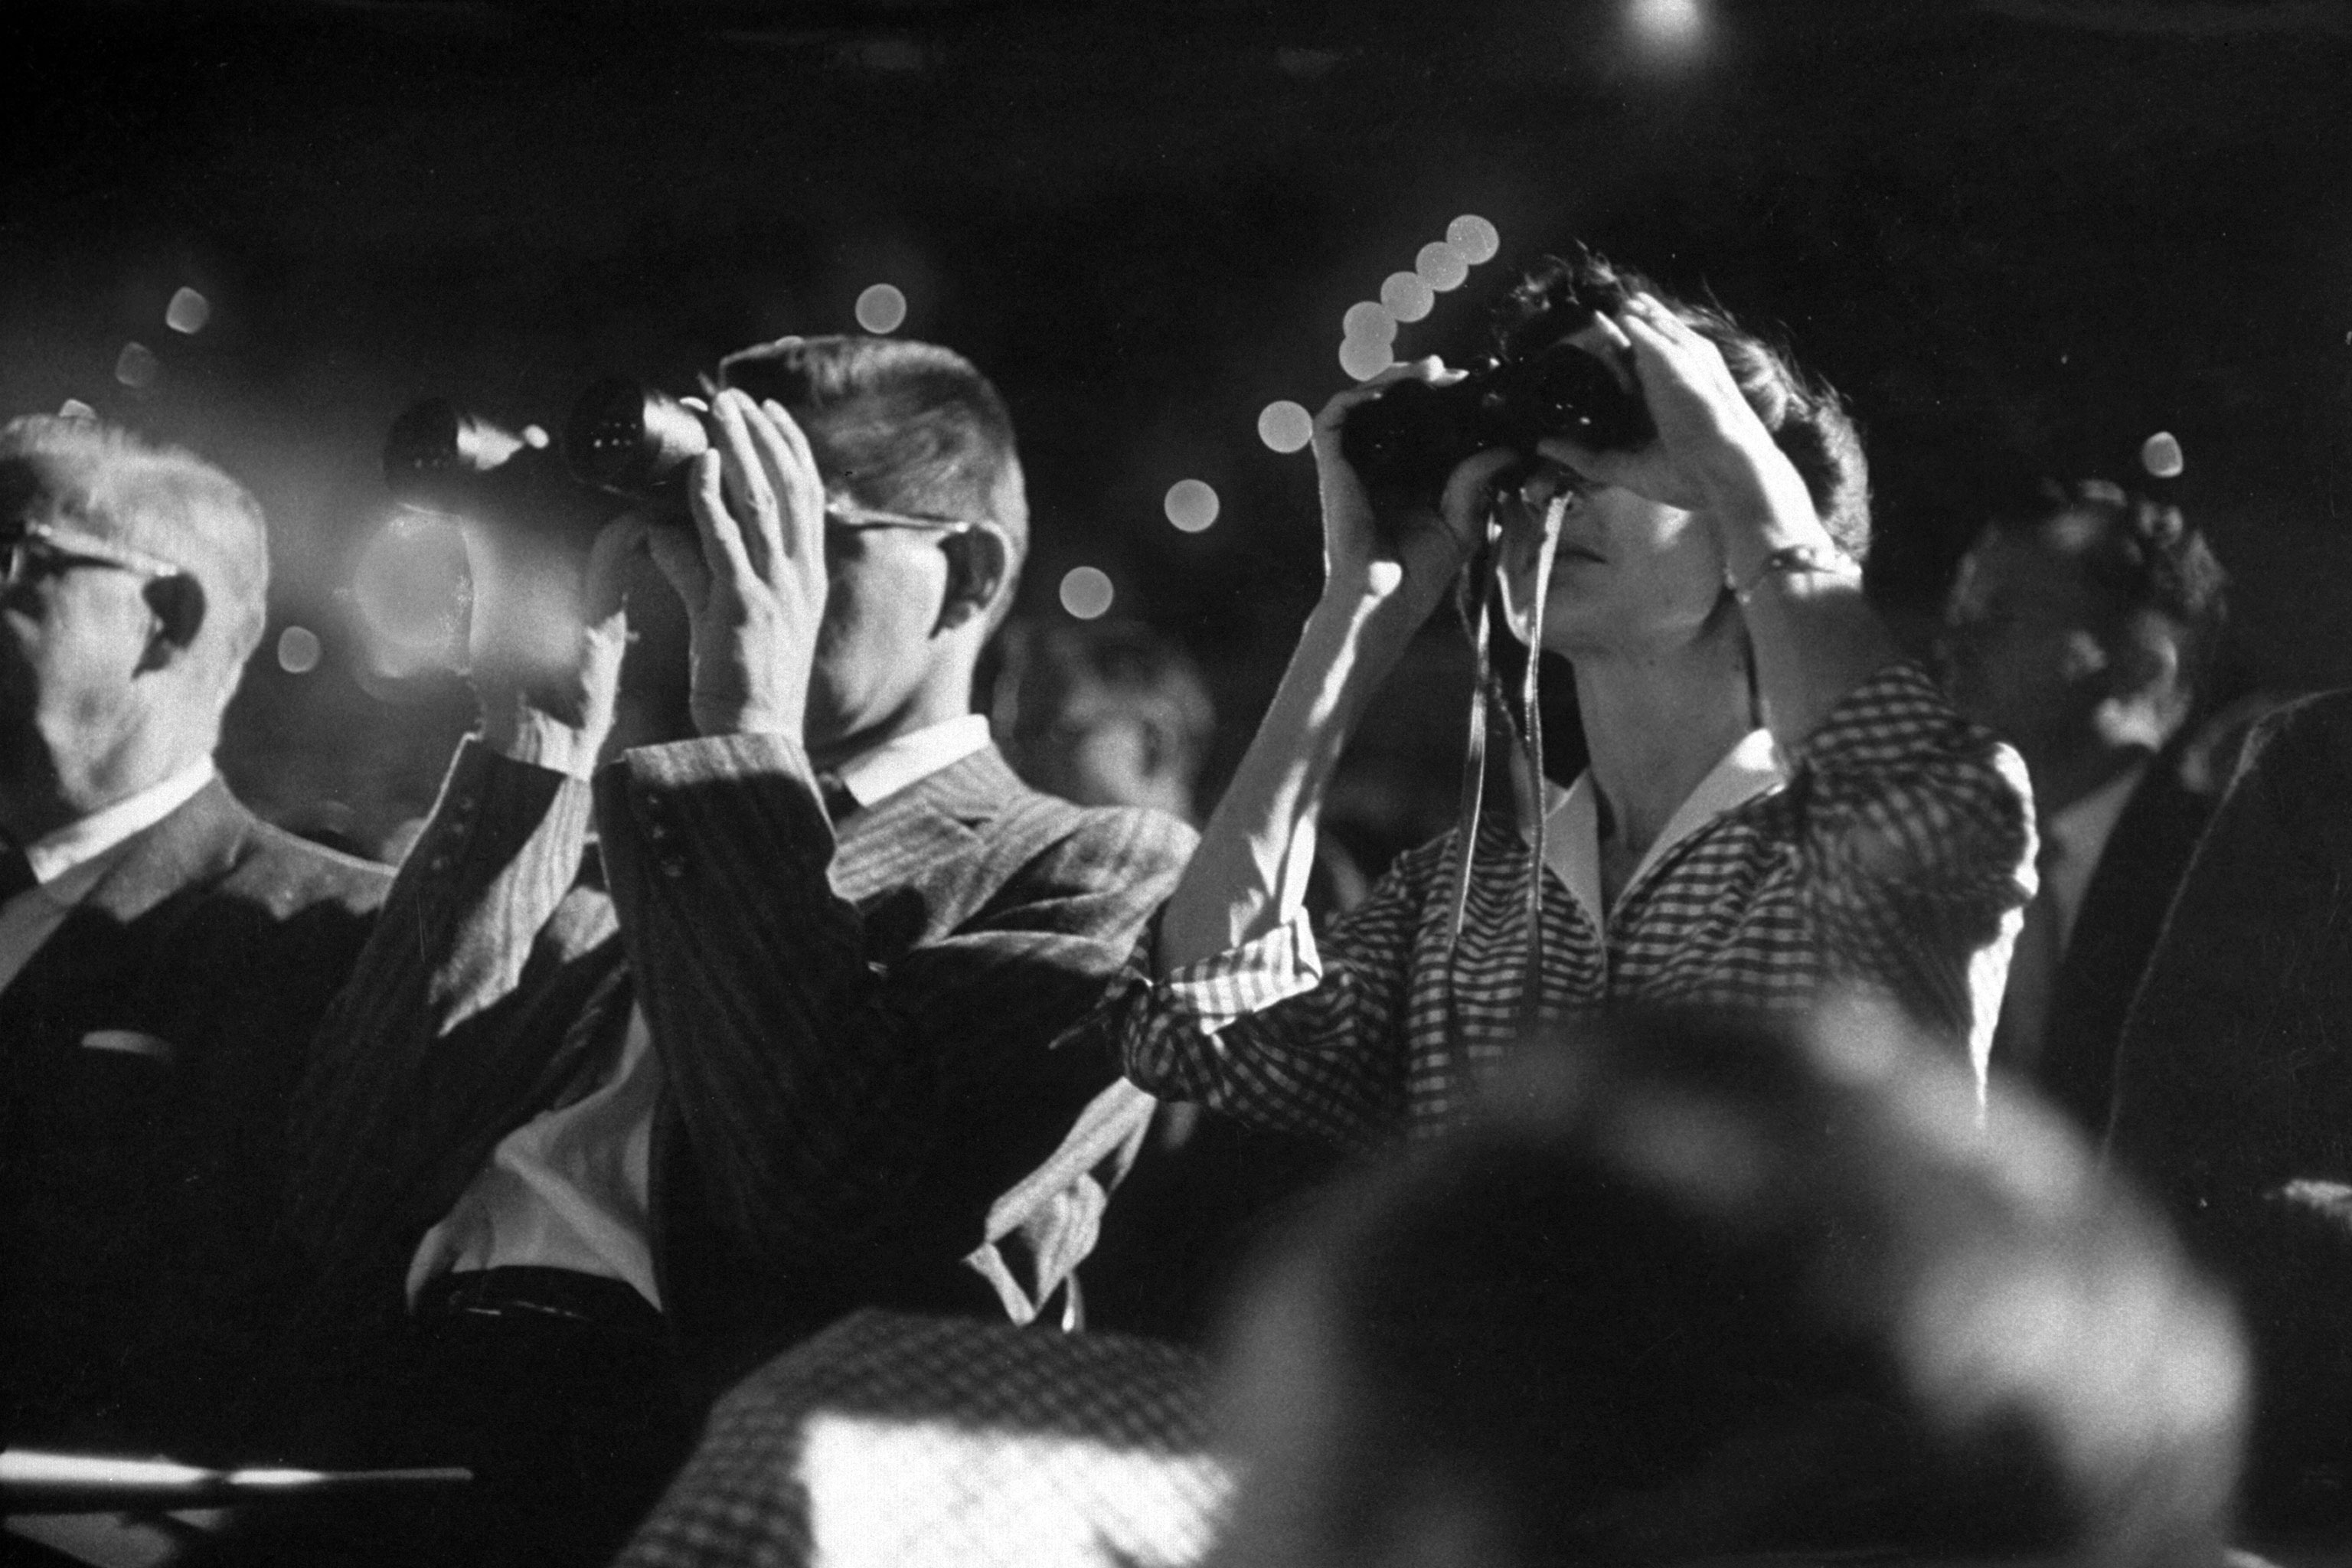 Audience members with binoculars during the 1957 Miss Universe contest.